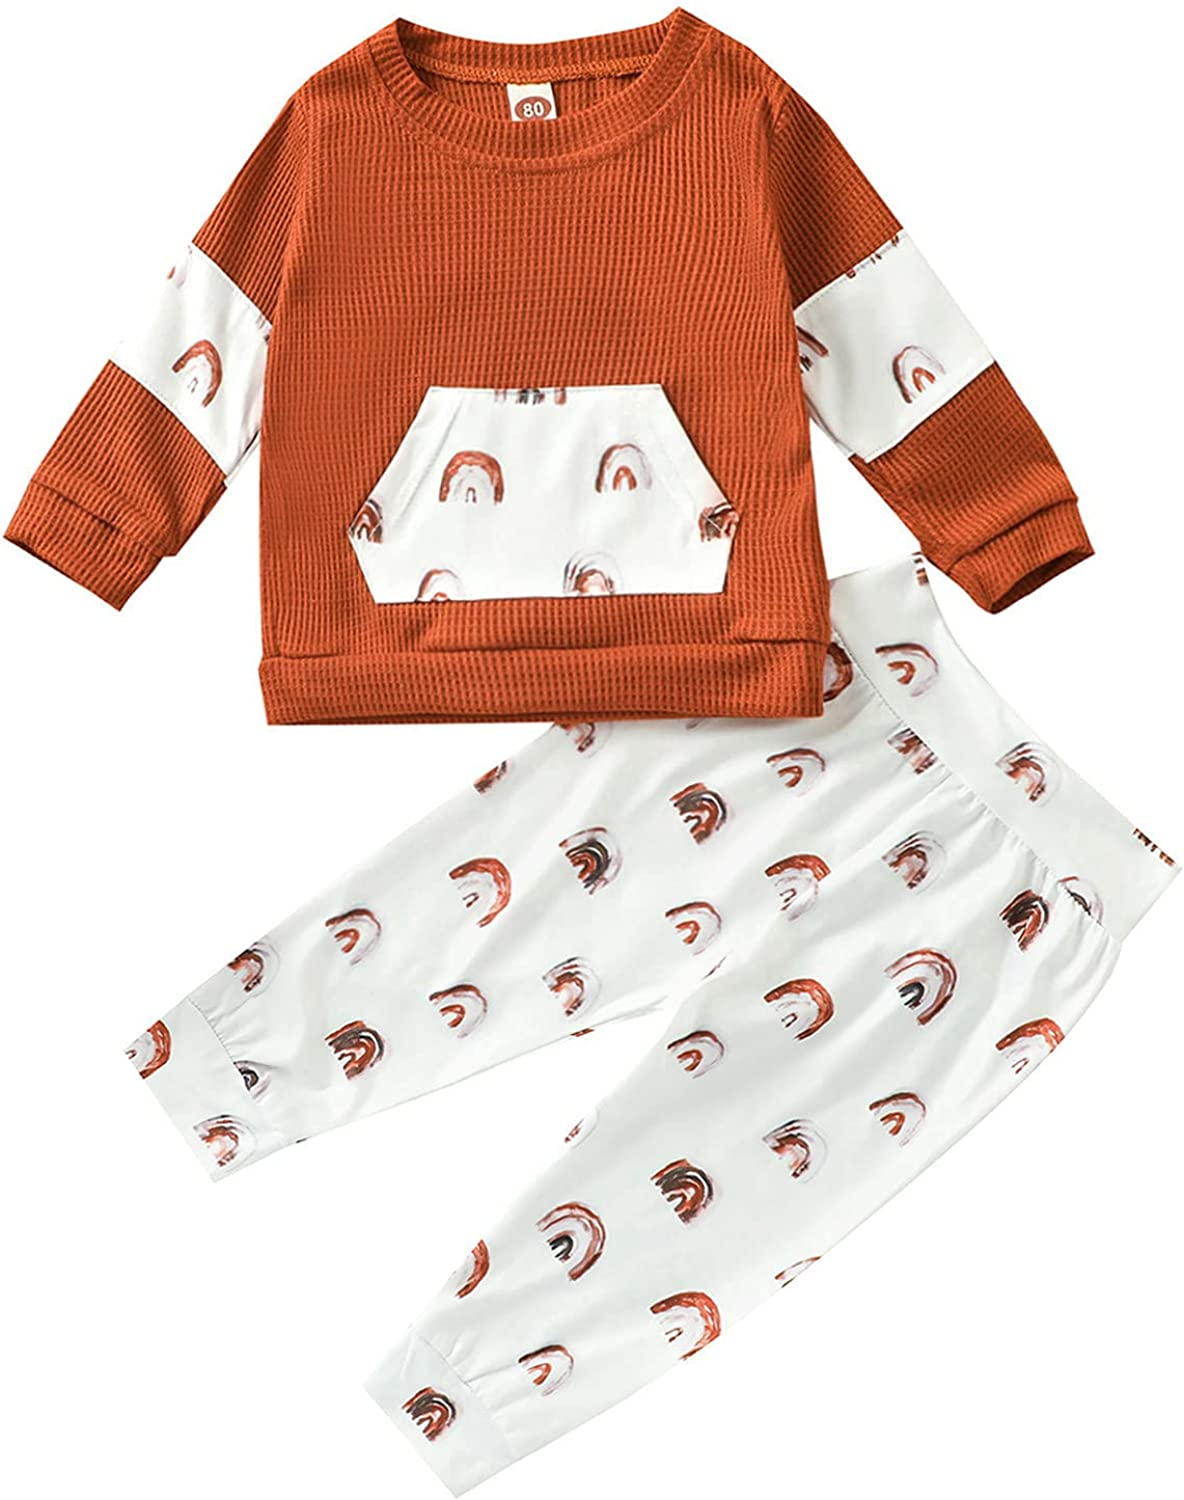 Toddler Infant Baby Boy Girl Outfits Long Sleeves Pullover Tops + Rainbow Print Pants 2Pcs Fall Winter Clothes